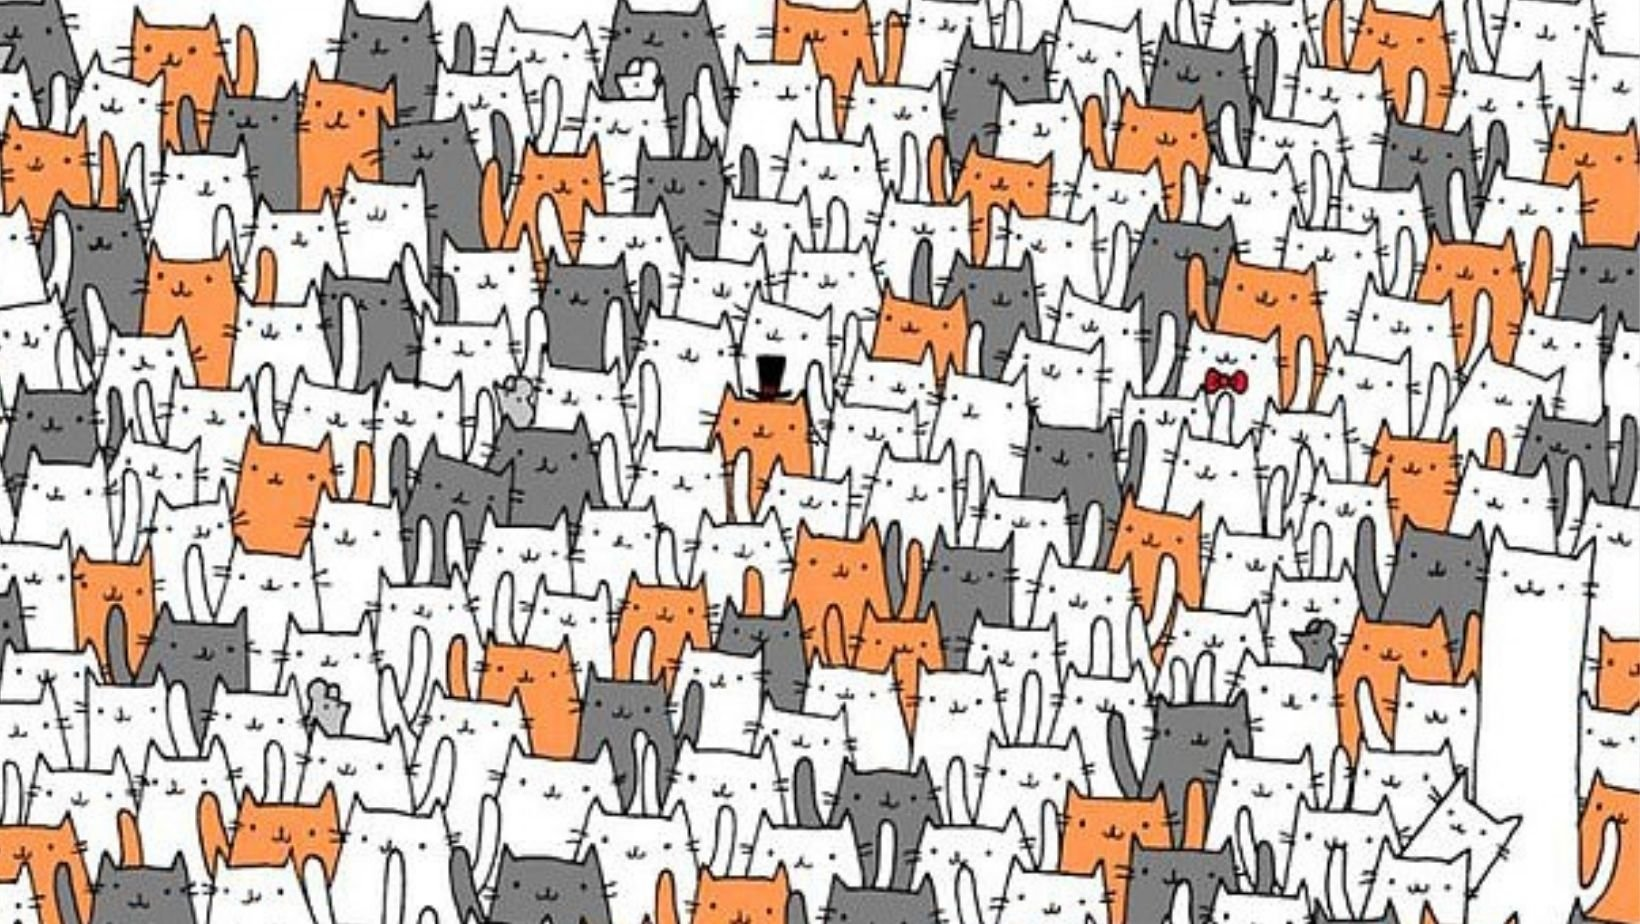 small joys thumbnail 3 3.jpg?resize=1200,630 - Can You Find The Hidden Rabbit In Less Than 60 Seconds?